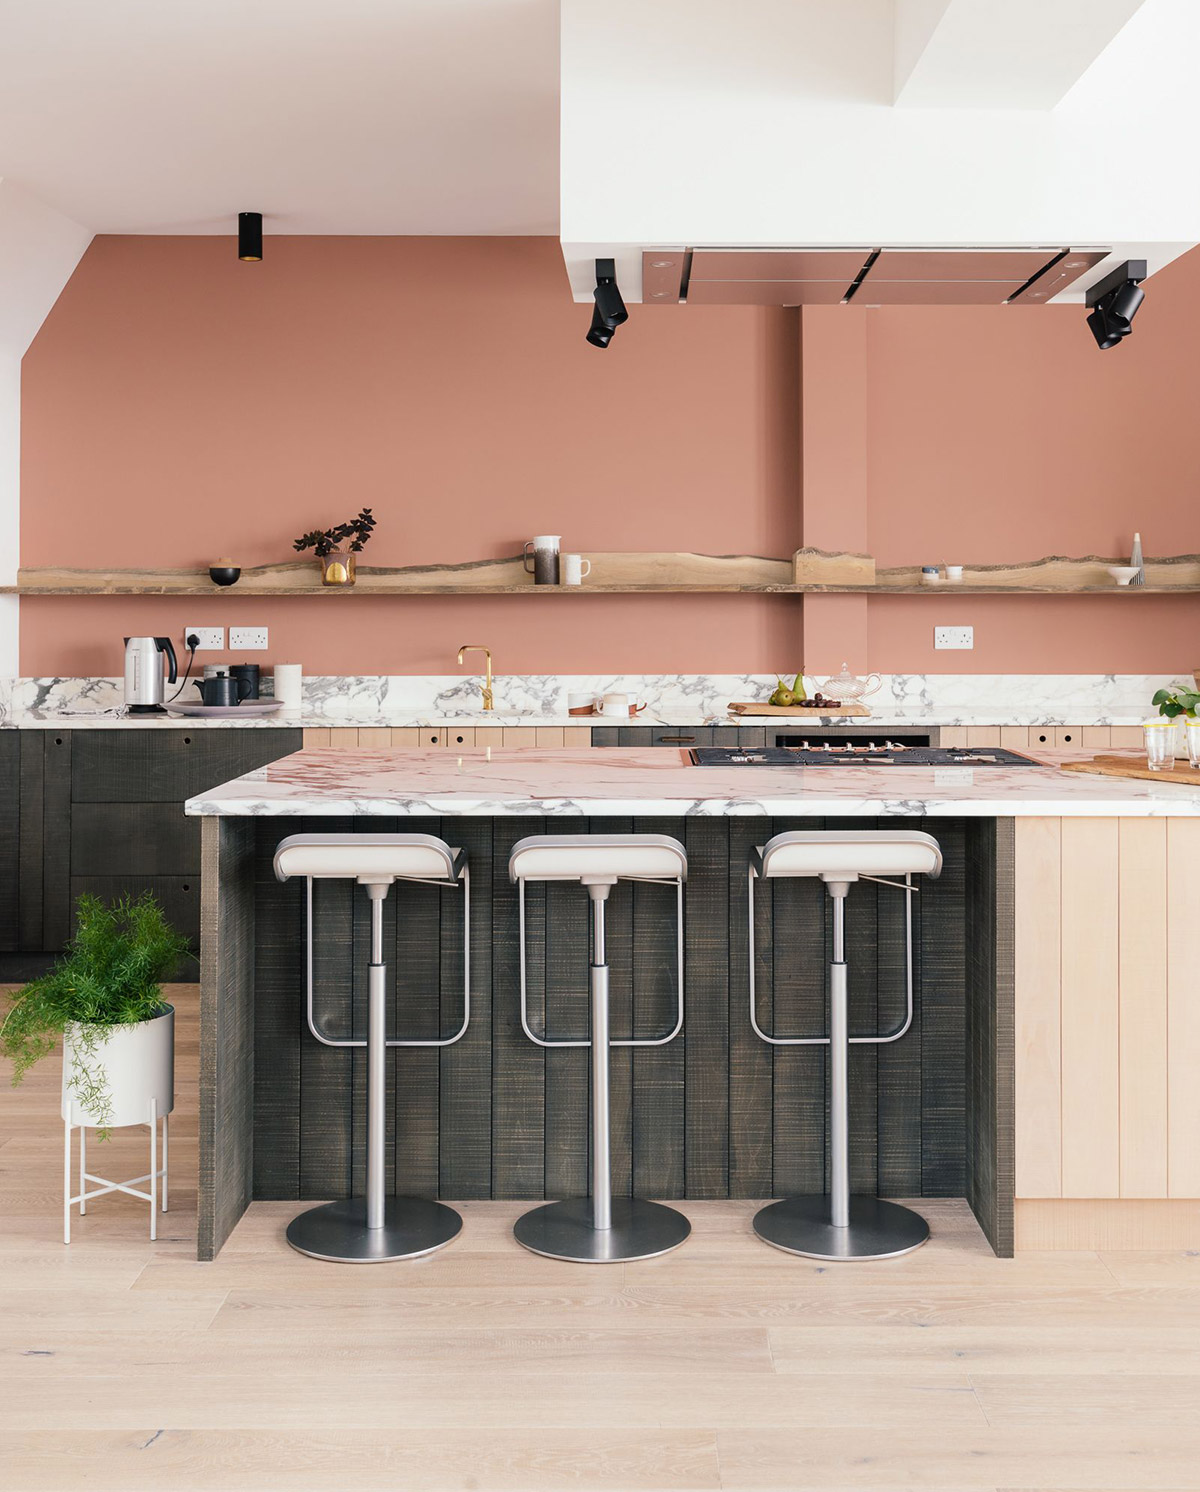 51 Inspirational Pink Kitchens With Tips & Accessories To Help You Design Yours images 15